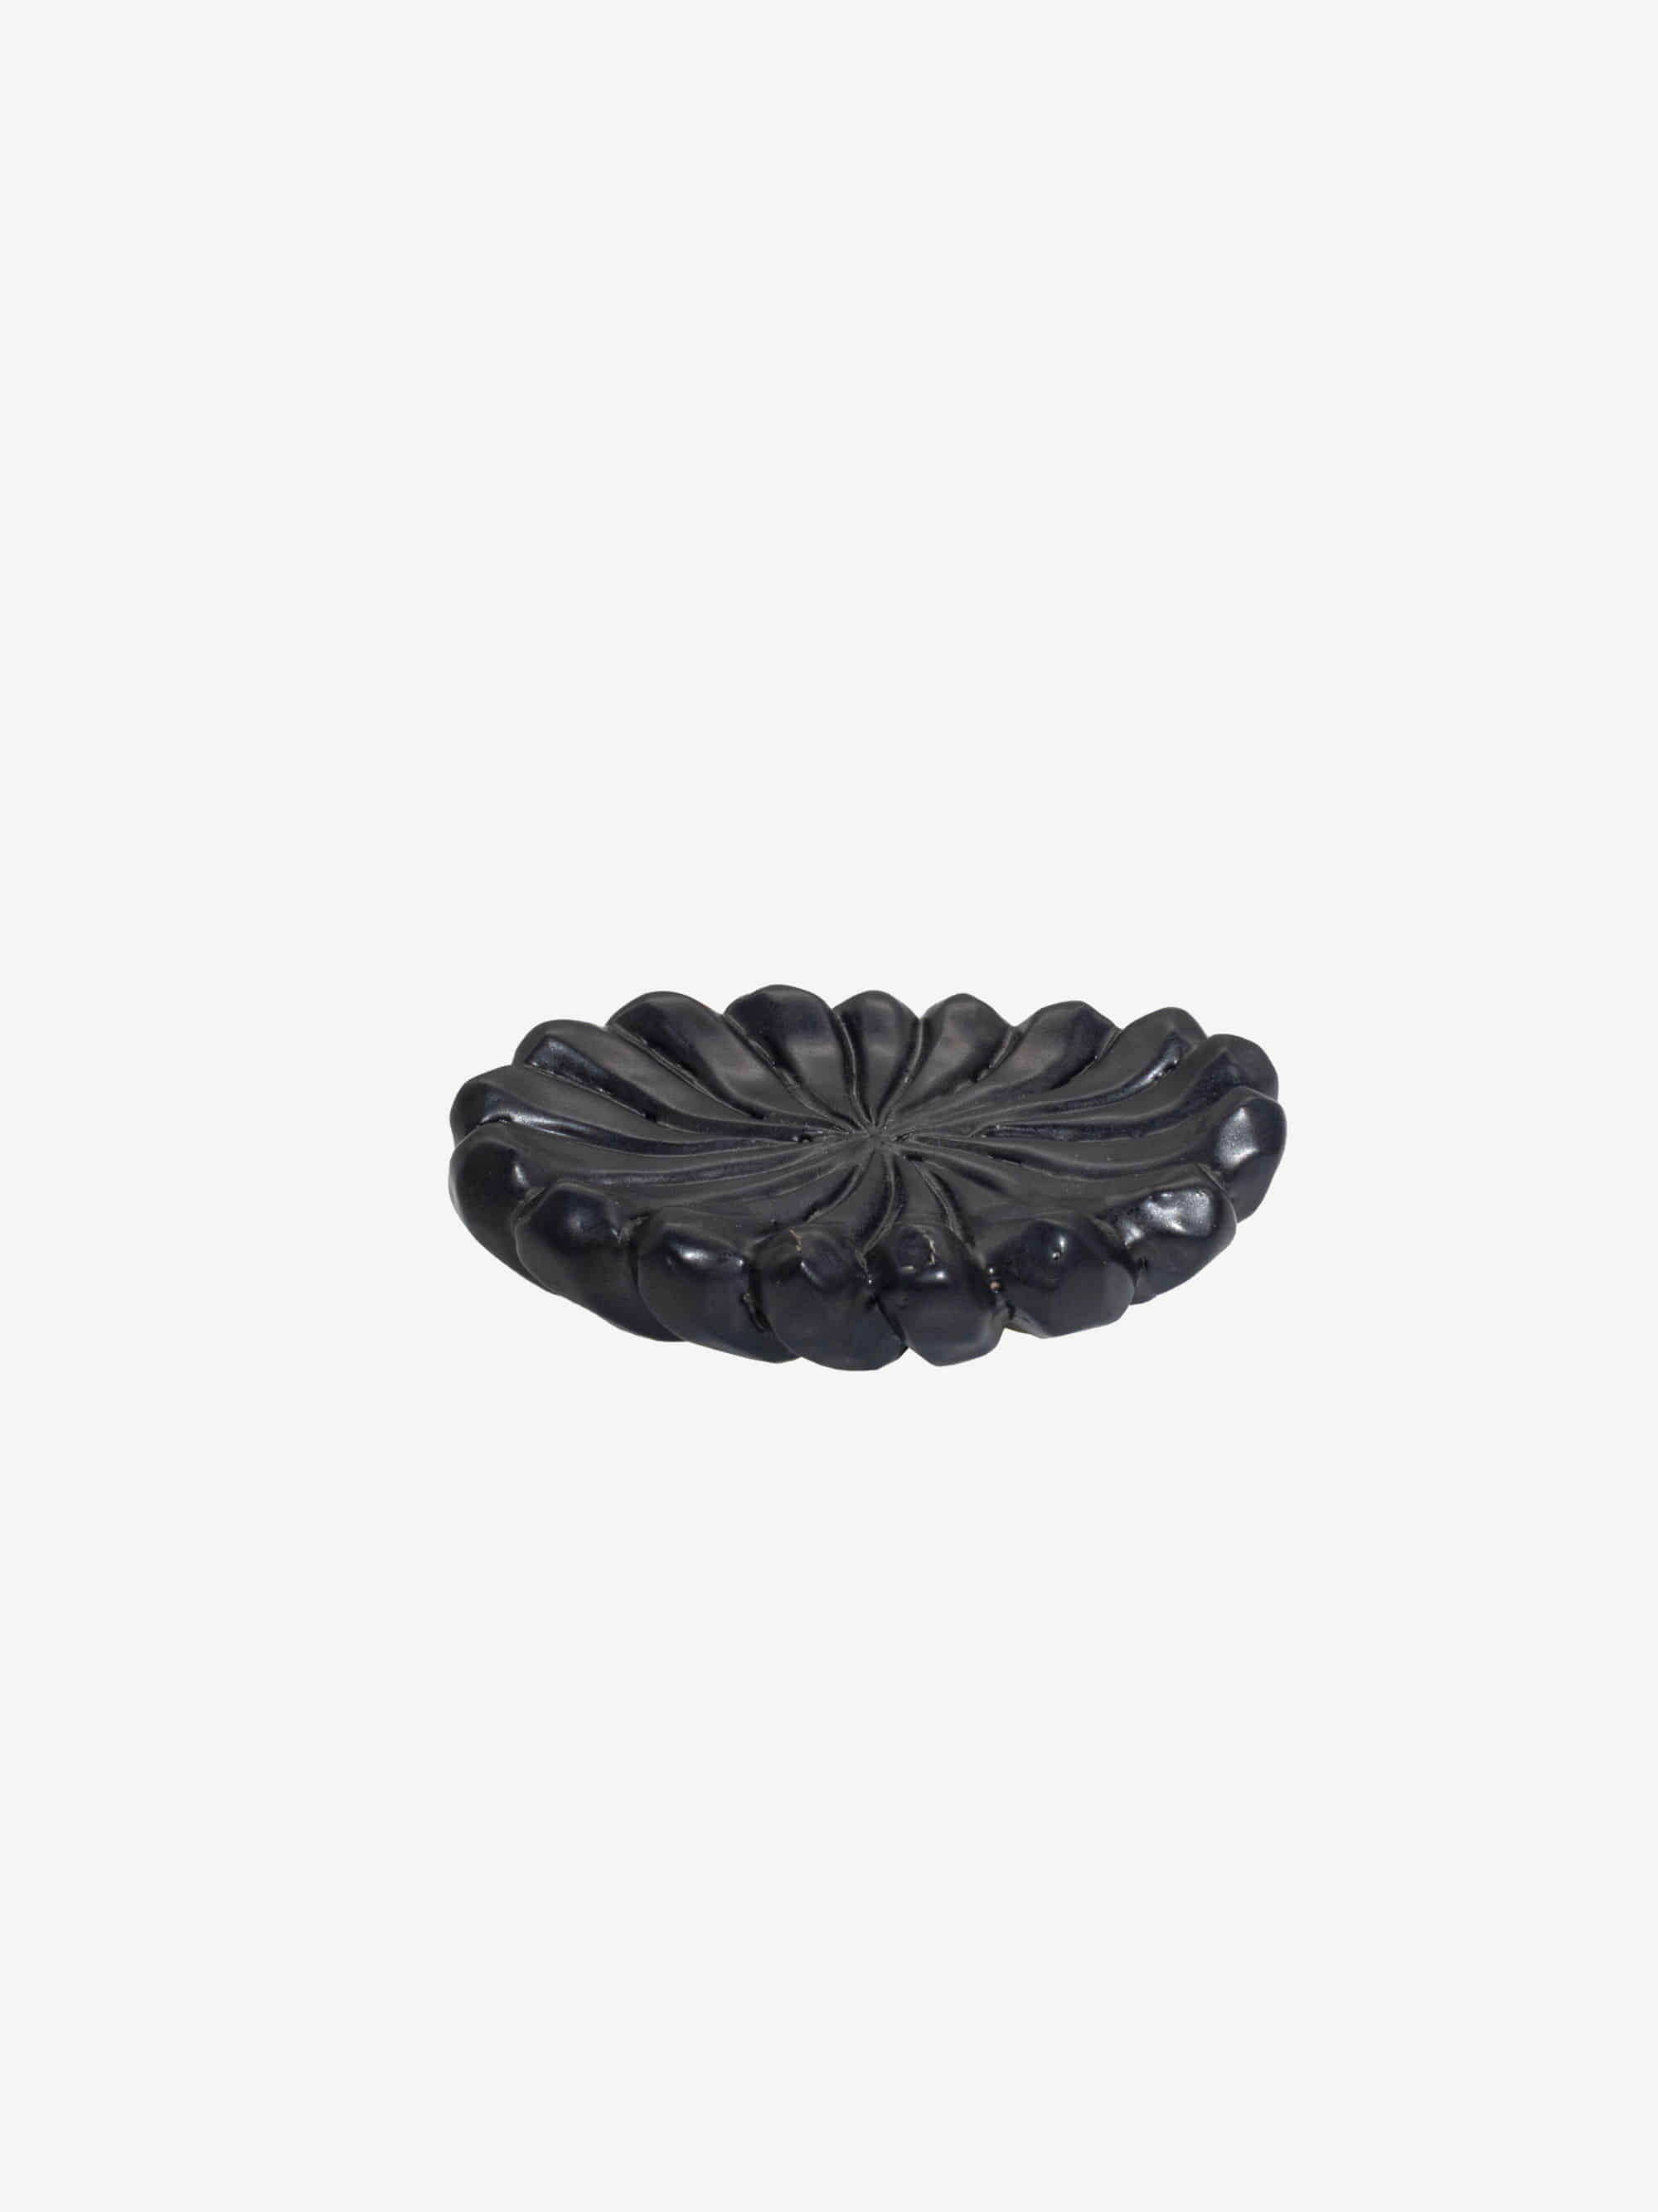 Sea Creature Tray Clod Black